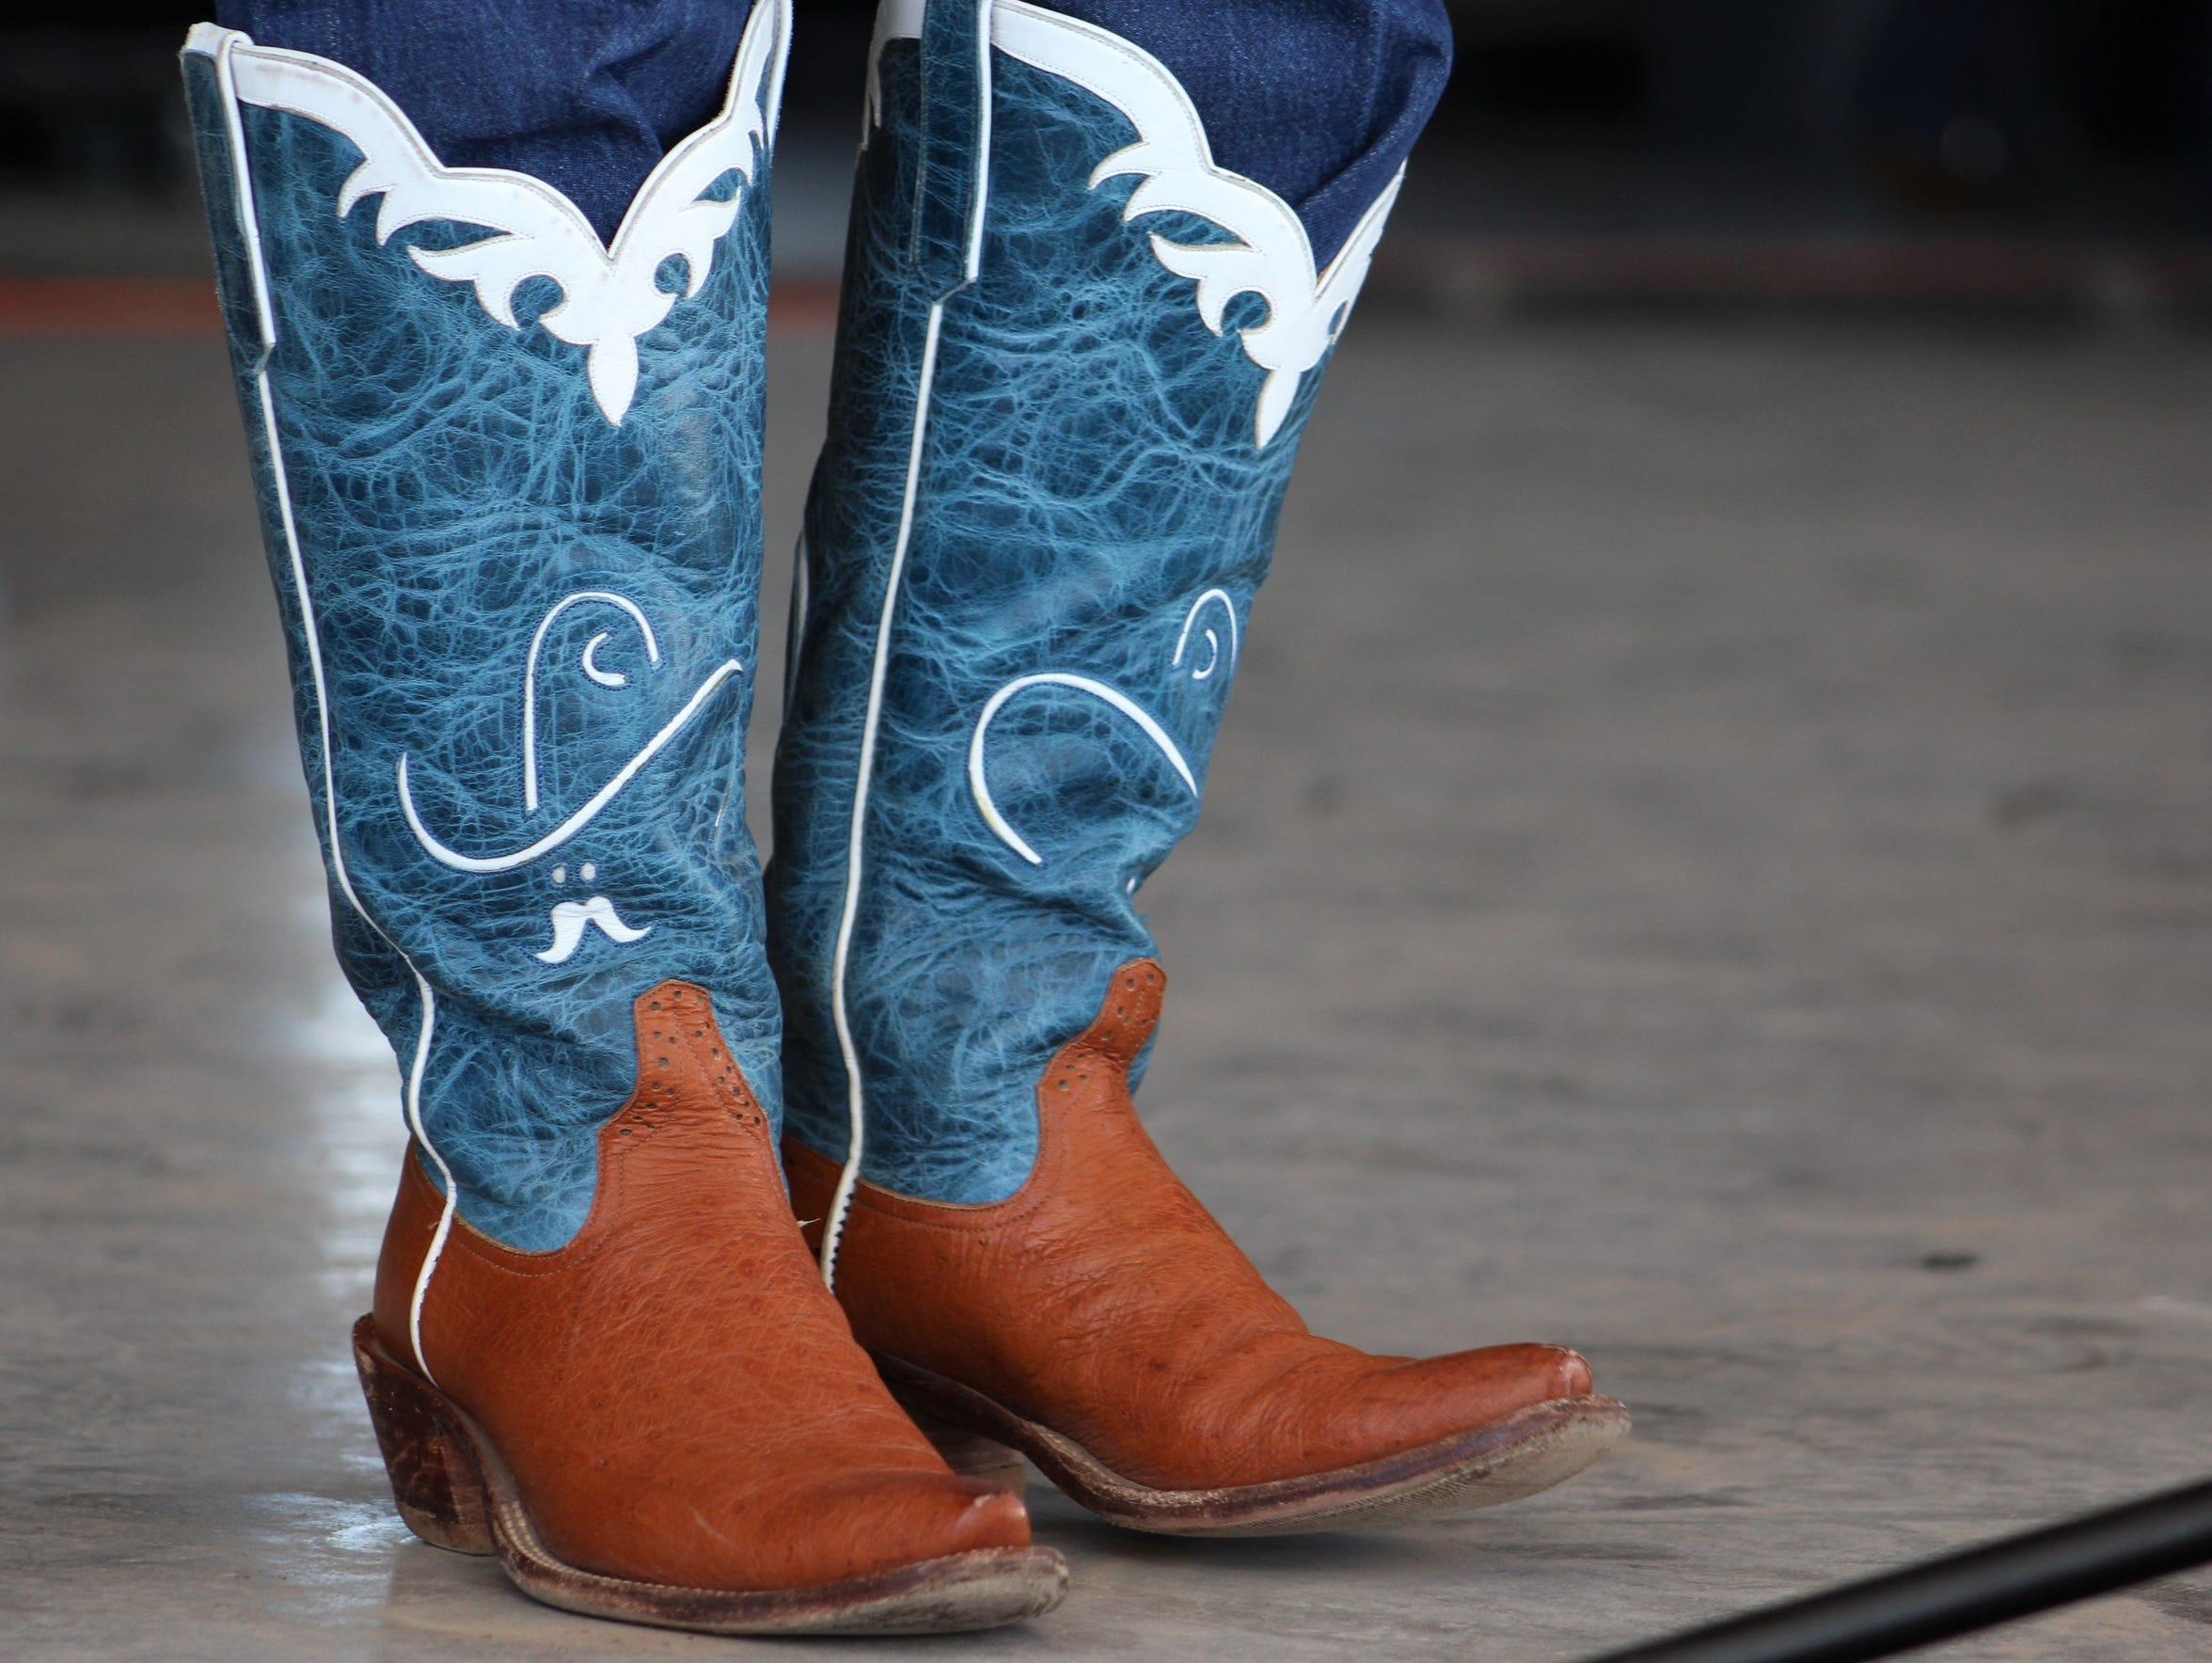 While people were listening to Jeff Gore sing at last year's Western Heritage Classic, some were admiring his boots, jeans tucked in. Gore is back for this year's event.